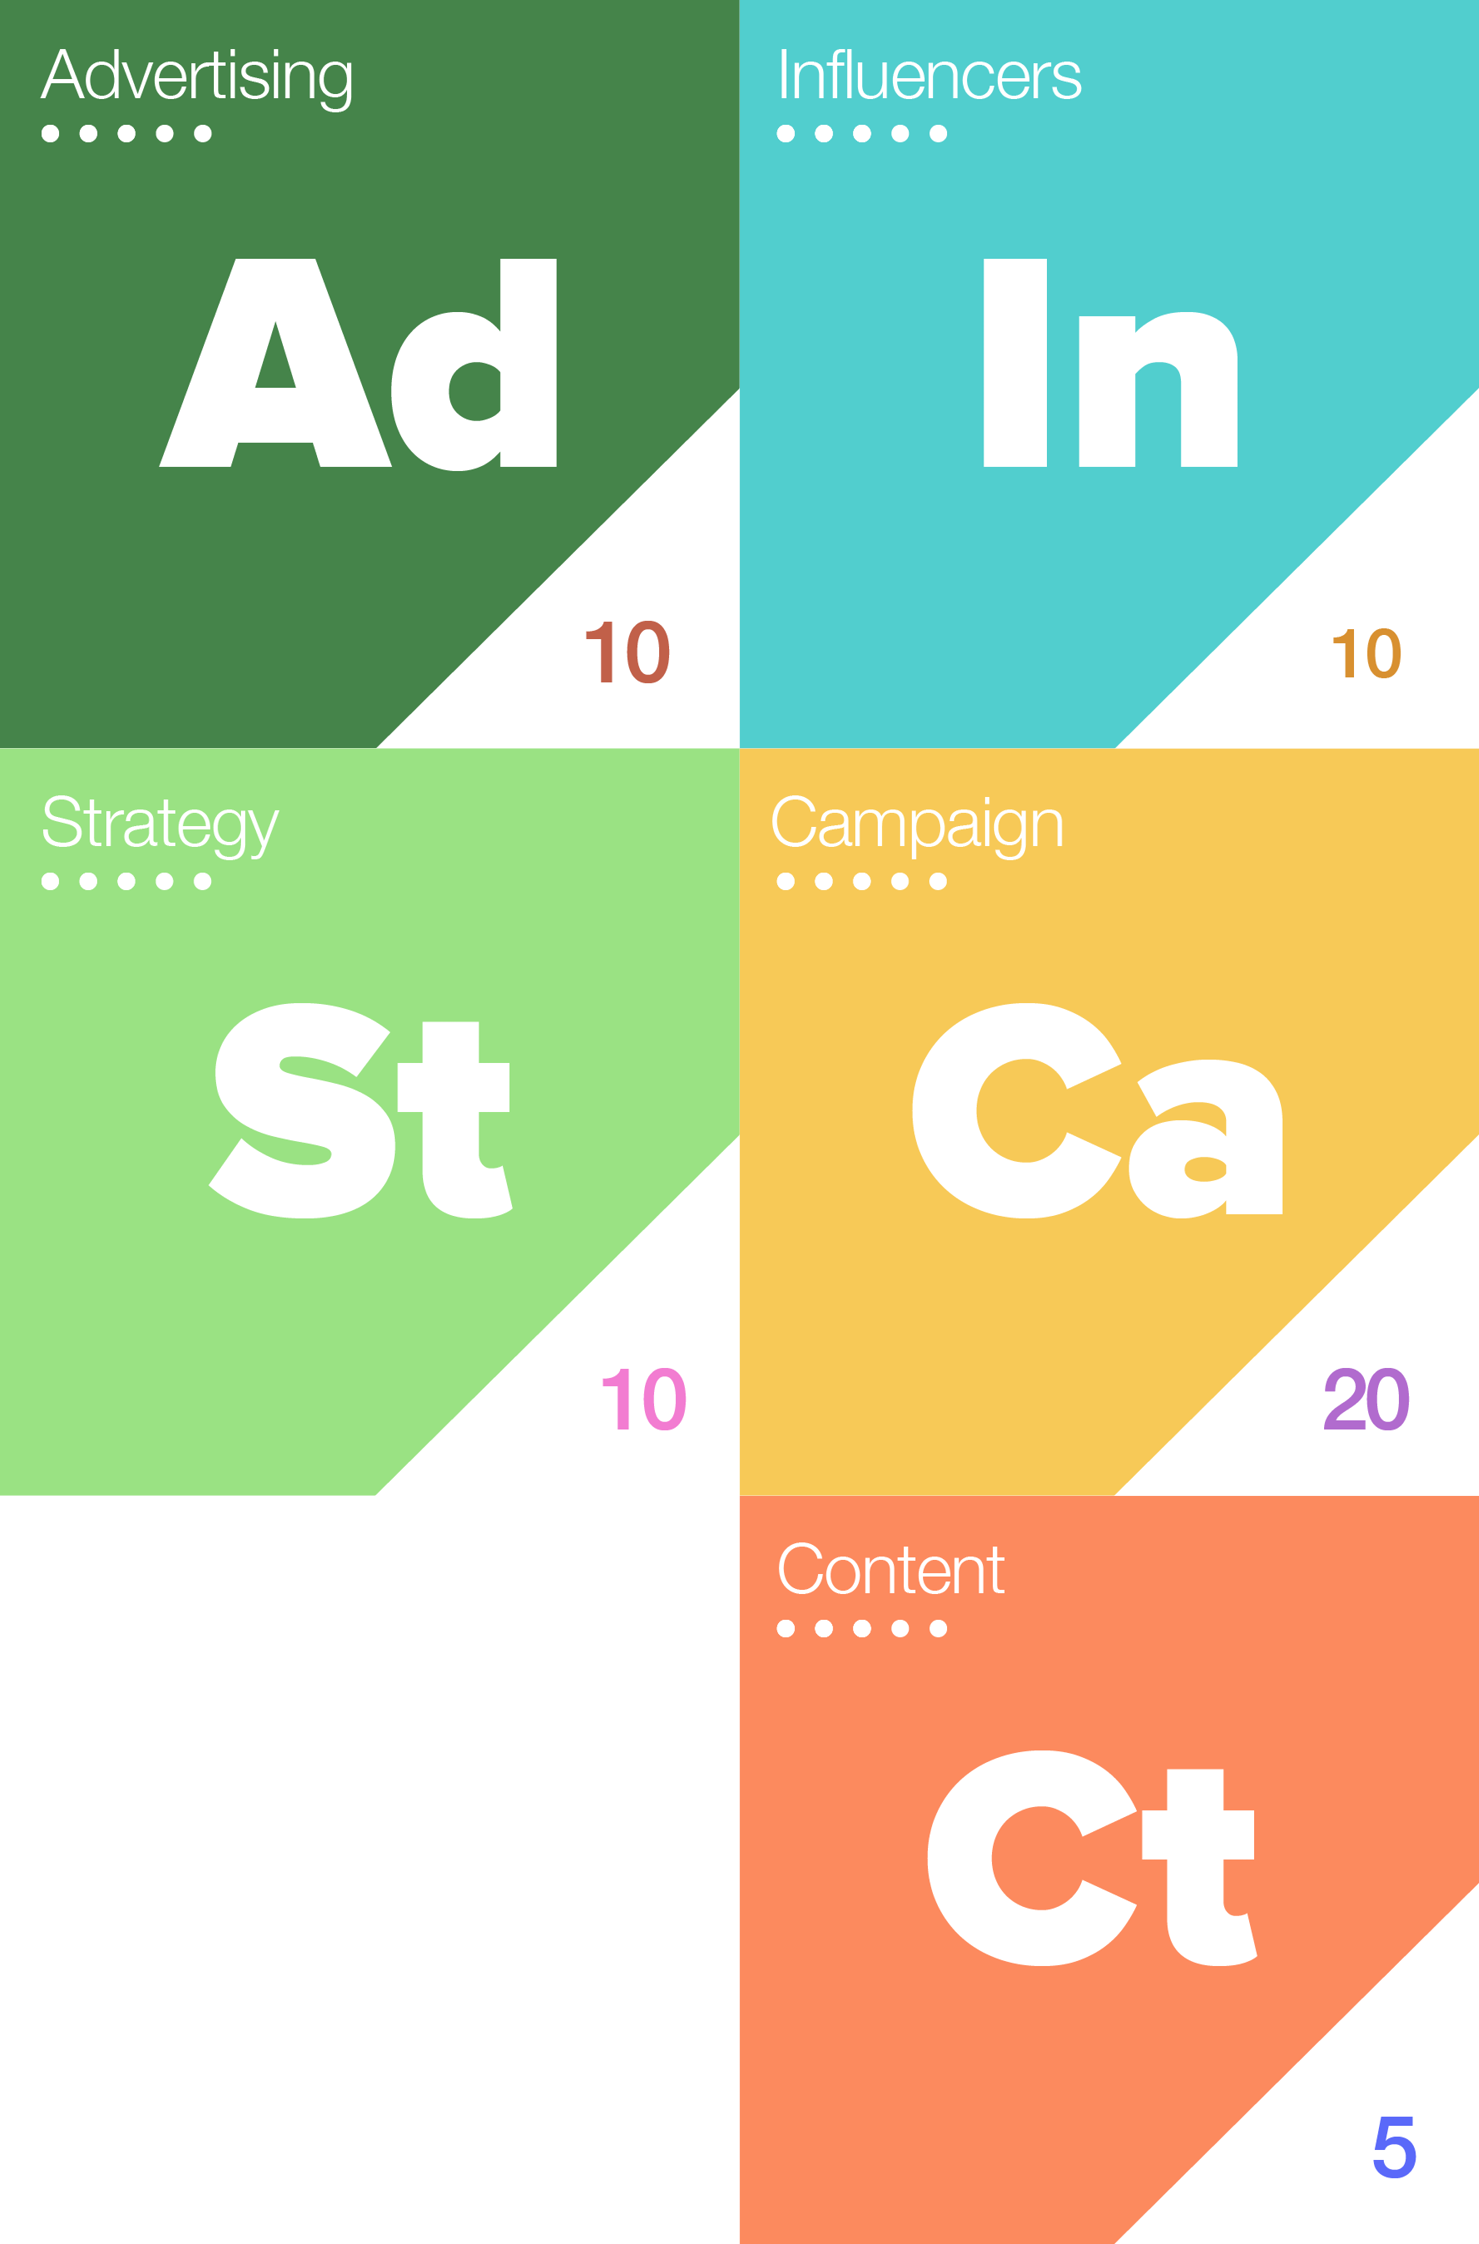 elements_packages_brands6.png